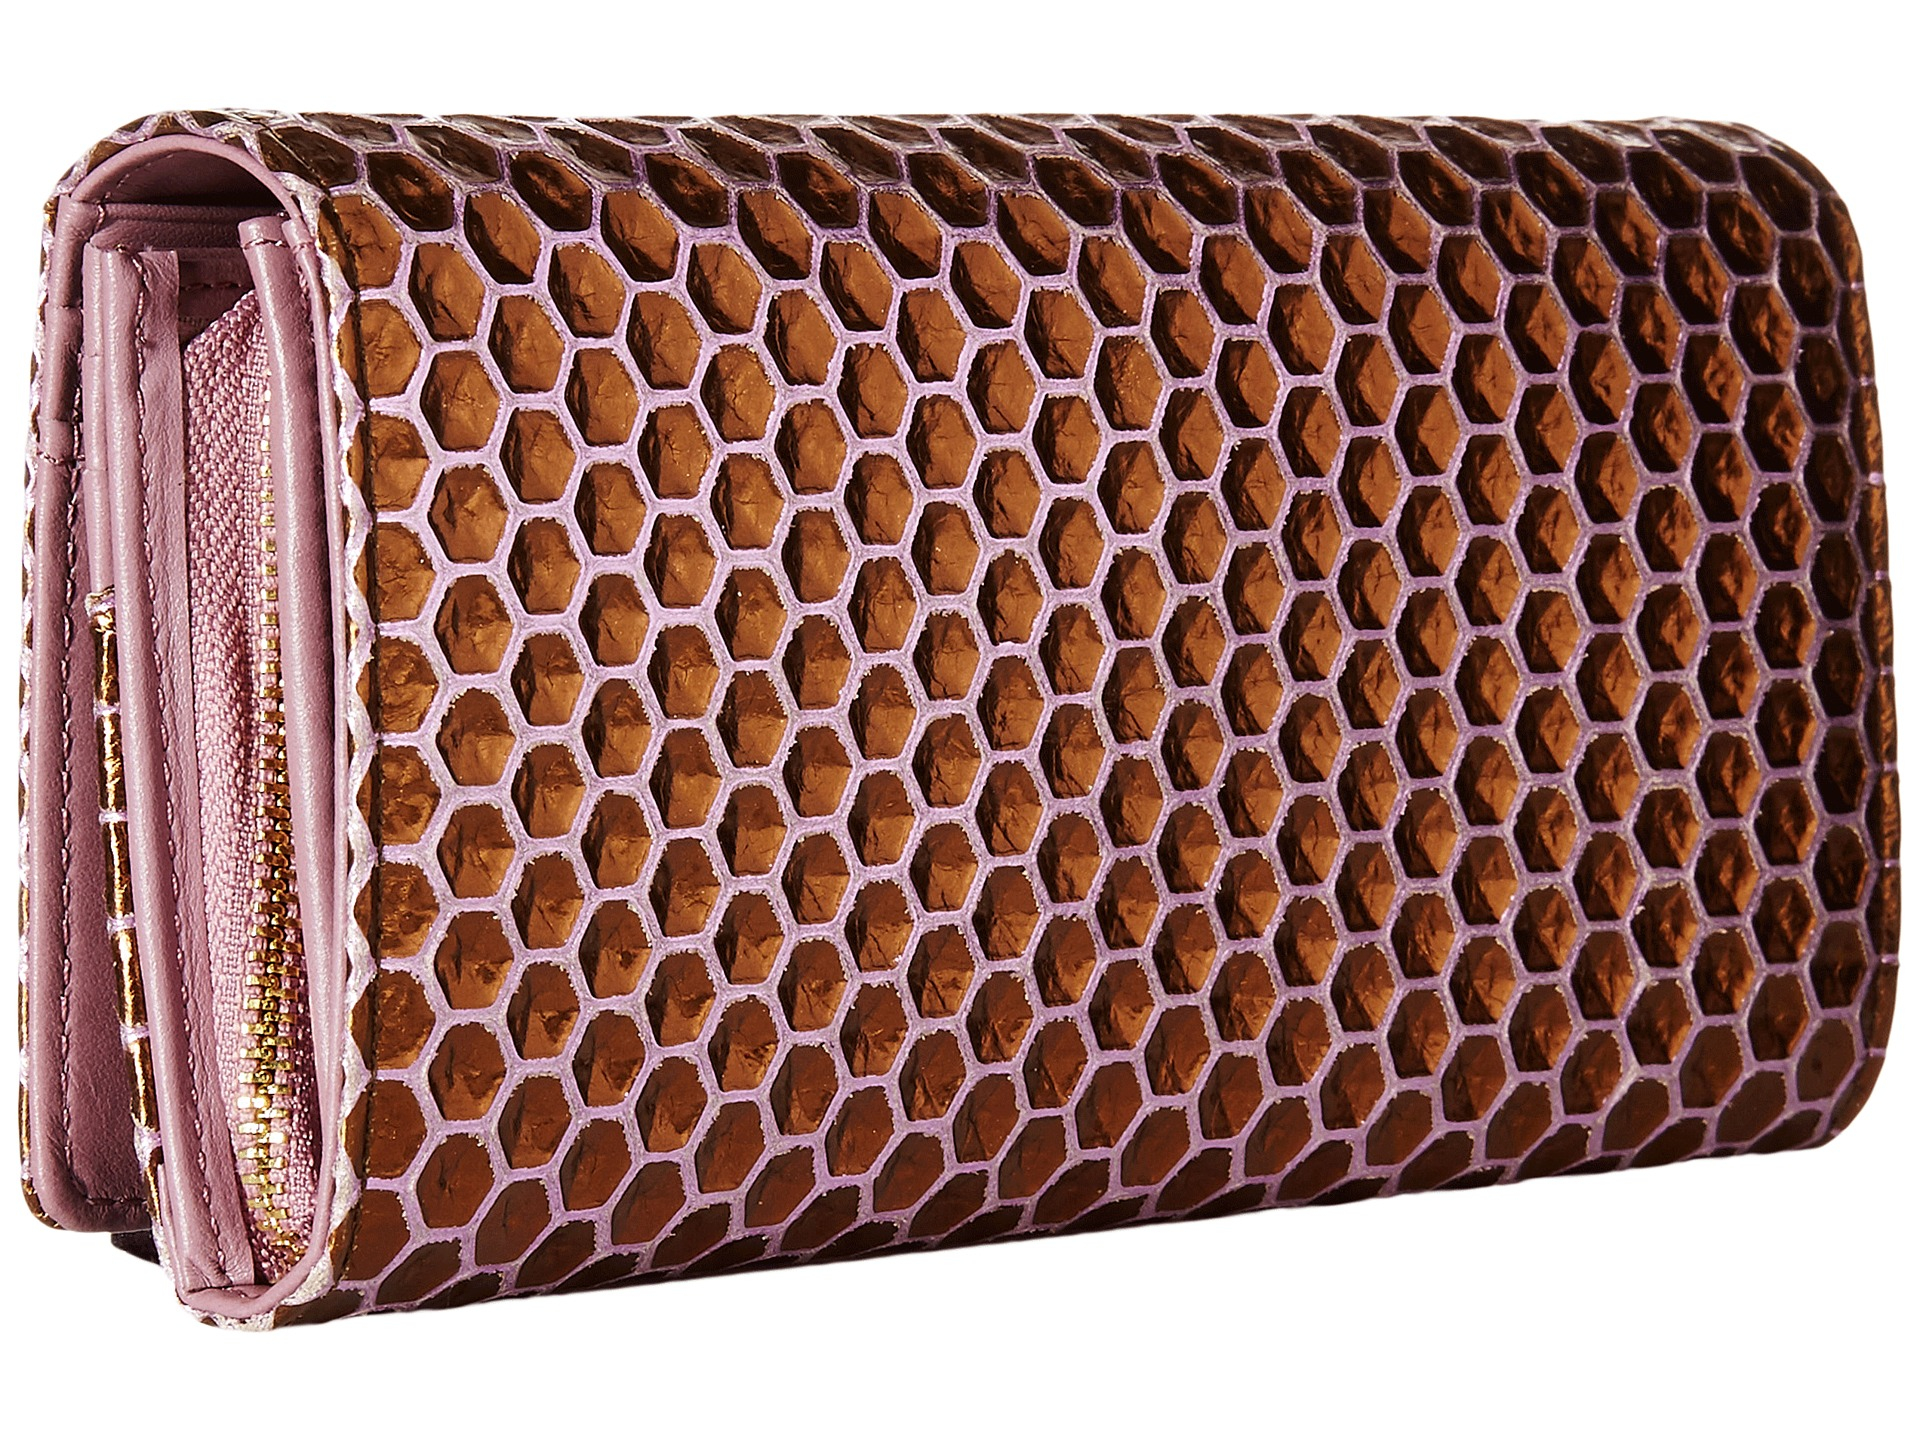 b1b324f4ee Vivienne Westwood Braccialini Honey Comb Long Wallet With Chain in ...